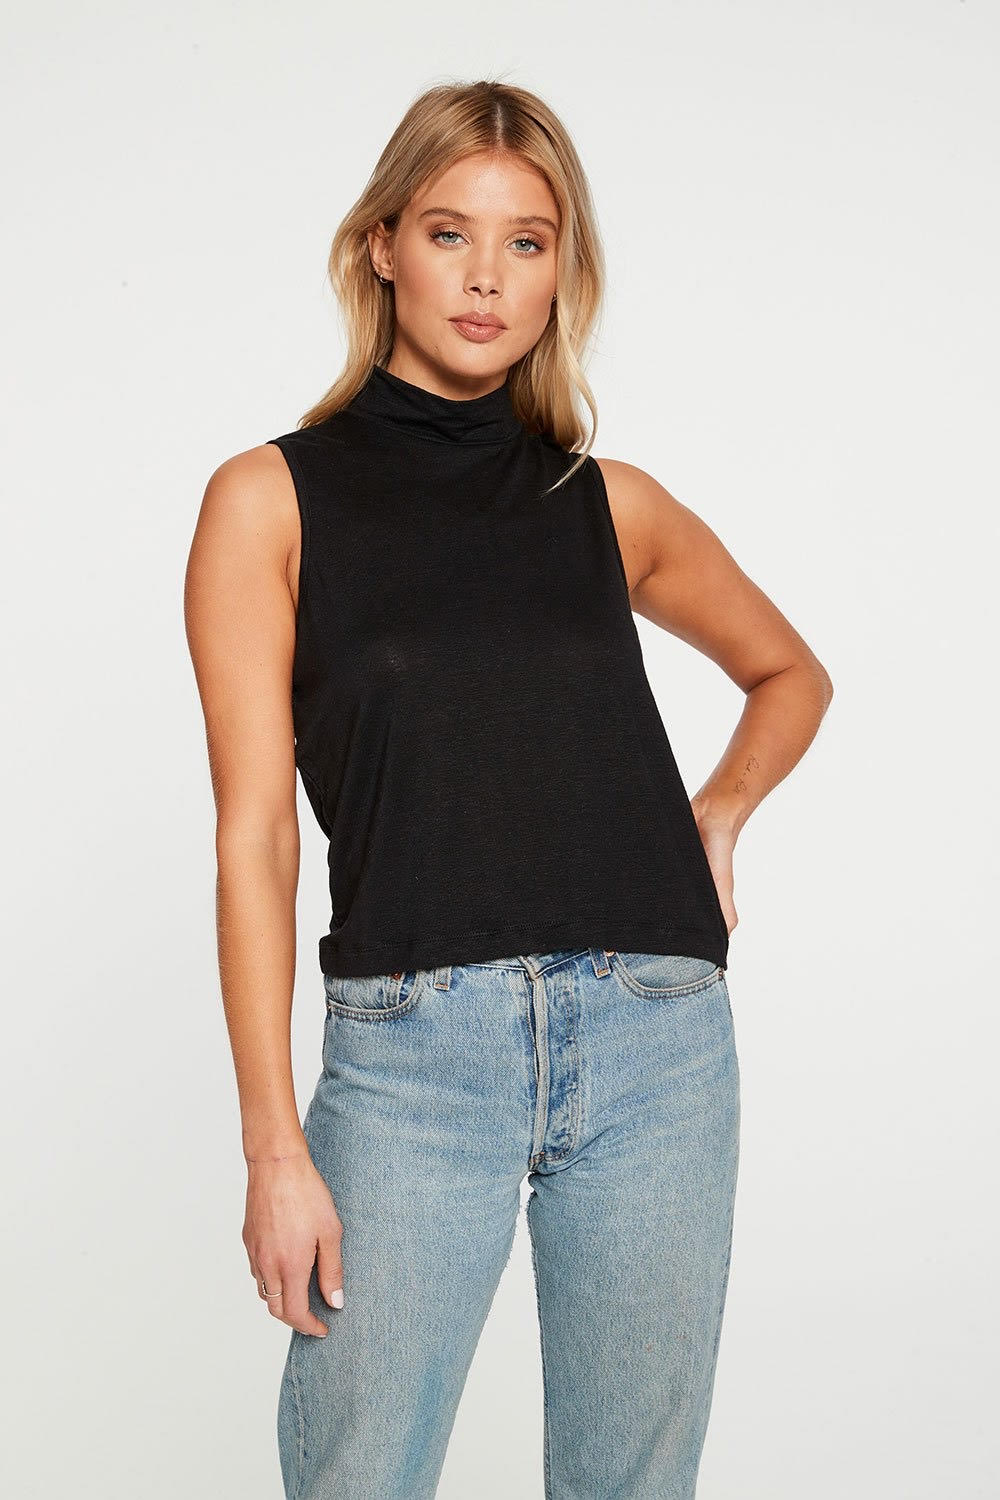 Chaser LINEN JERSEY CROPPED MOCK NECK MUSCLE TANK CW8395-TRBLK